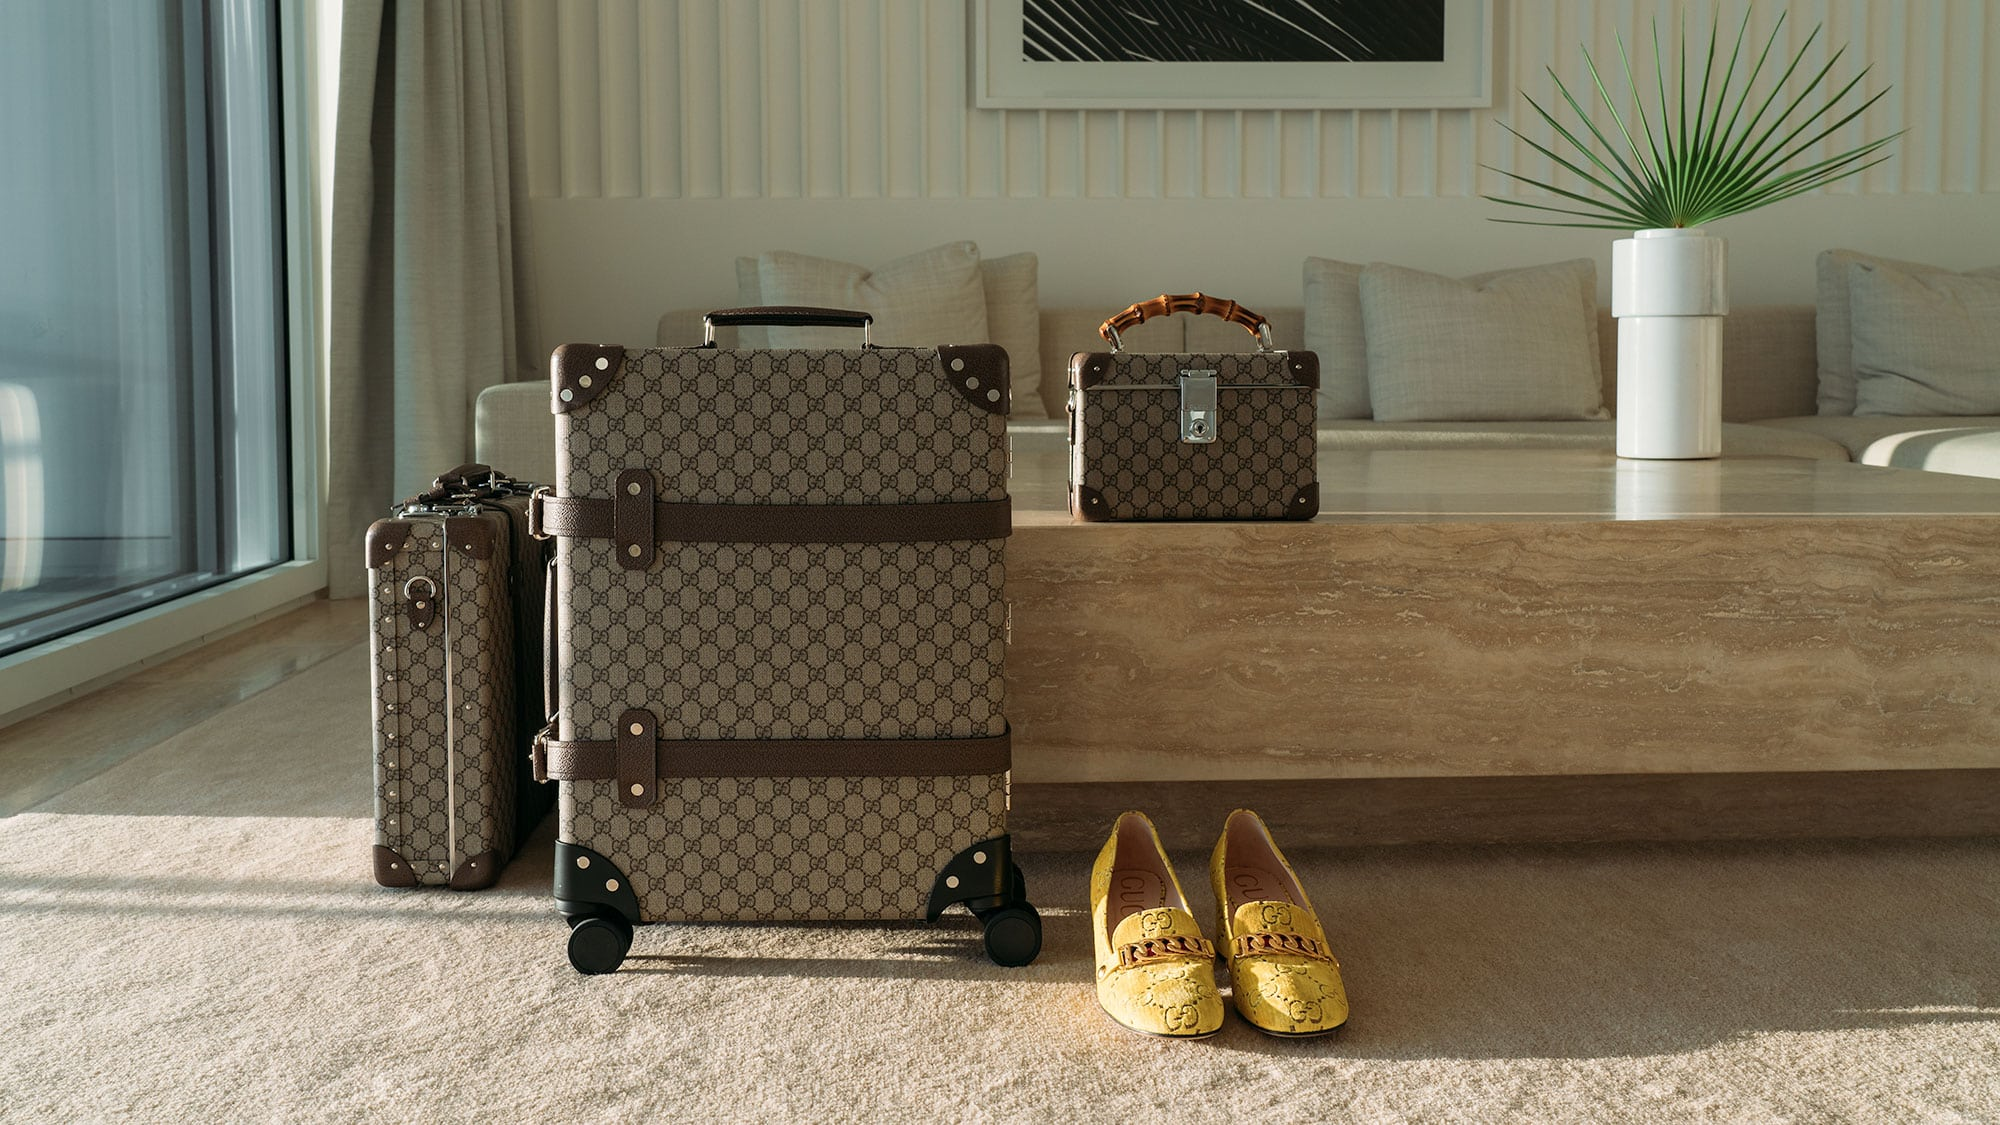 7a8b3e4dcd7 Gucci Collaborates with Globe-Trotter on Functional New Luggage Collection  - PurseBlog